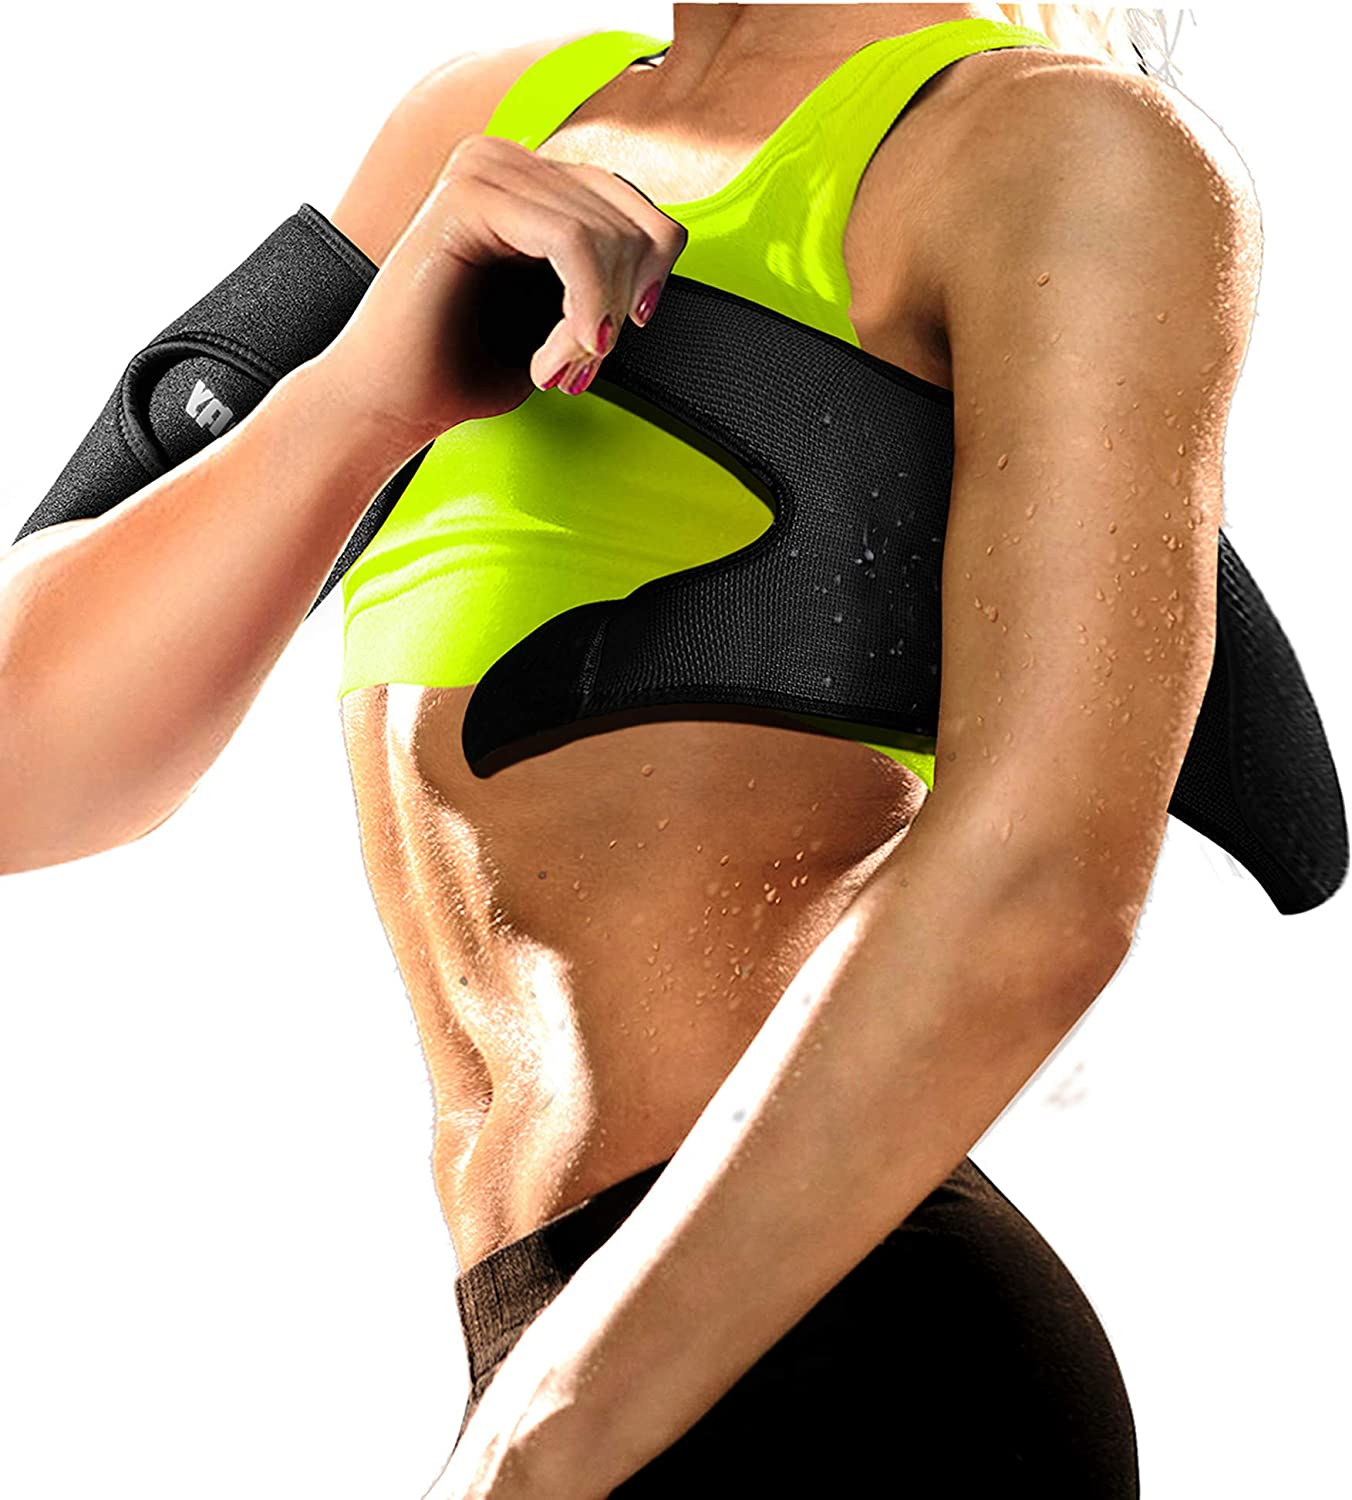 Neoprene Arm Trimmers Sauna Sweat Band Women Men Loss Manufacturer direct delivery Weight for Outlet SALE